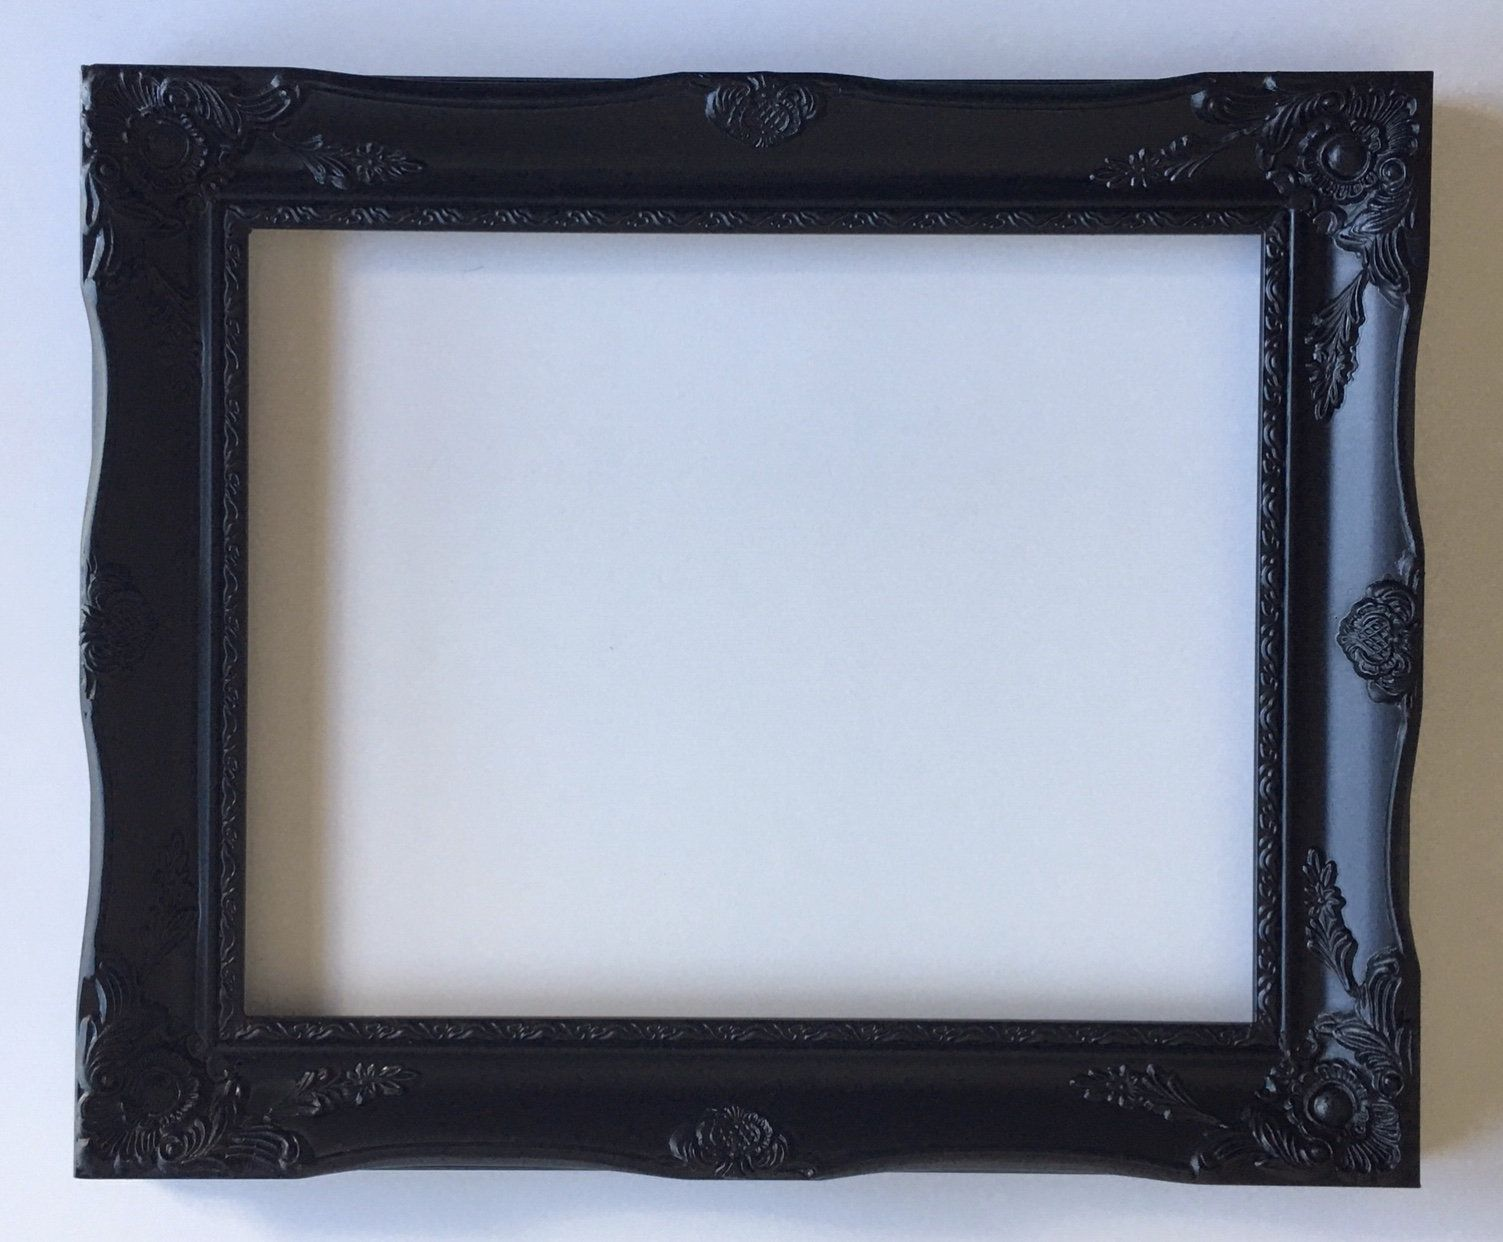 Matte Black Picture Frame With Glass And Back 11x14 Vintage Inspired Ornate Wall Gallery Black Picture Frames Farmhouse Picture Frames Picture Frames